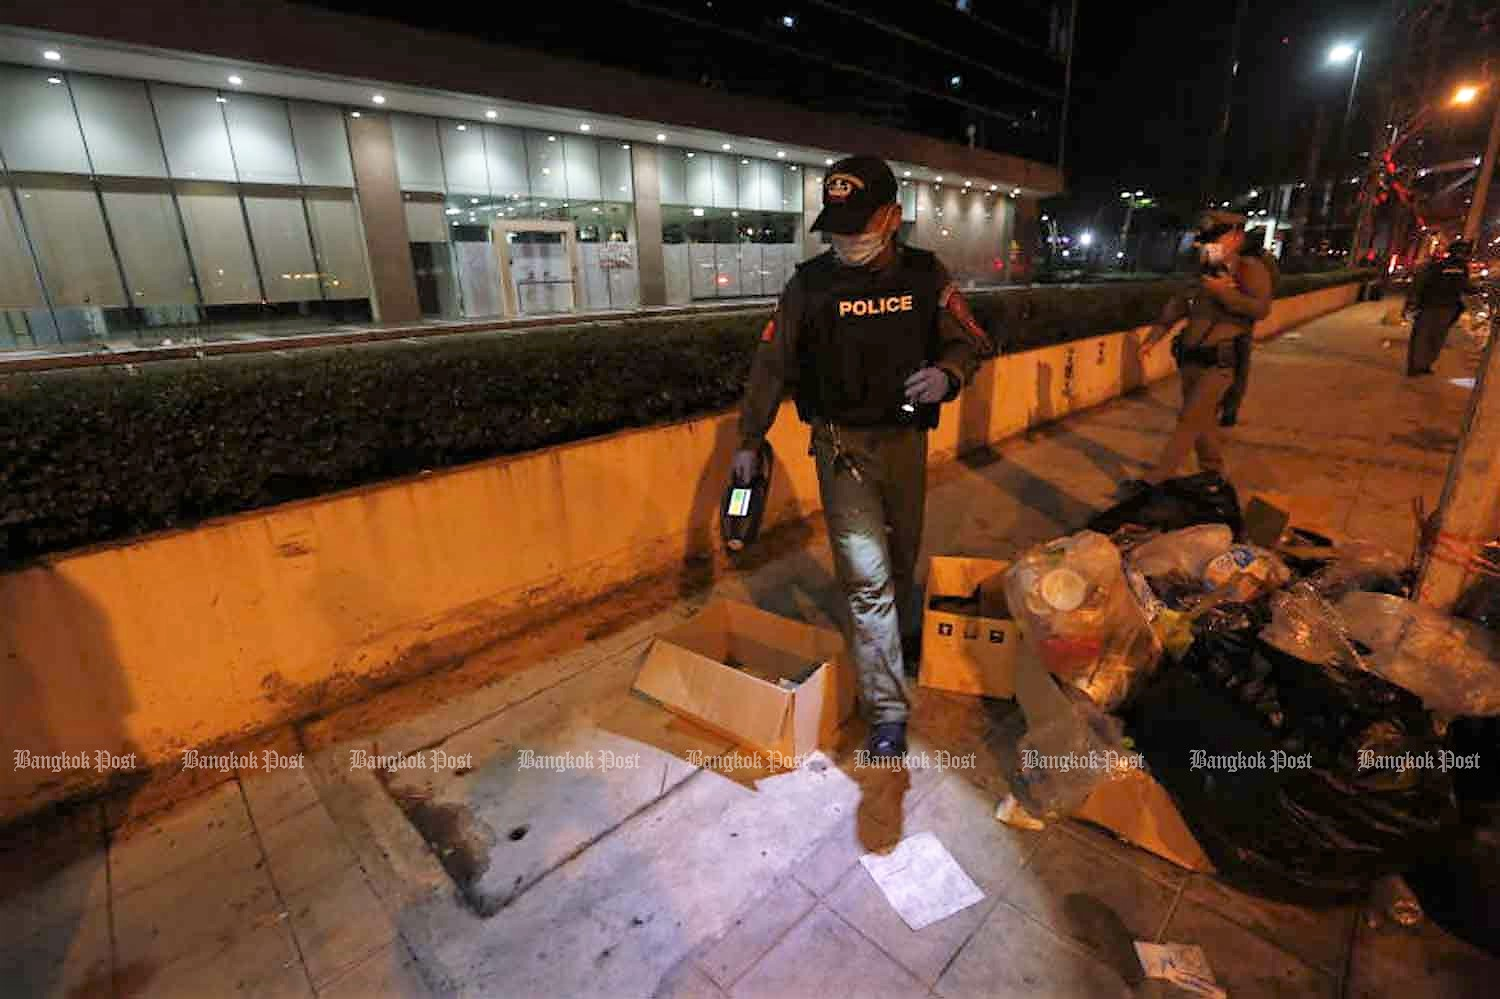 Police examine the protest site outside Siam Commercial Bank headquarters, across from the area where the shooting occurred, in Chatuchak district, Bangkok, after the rally ended on Wednesday night. (Photo: Arnun Chonmahatrakool)